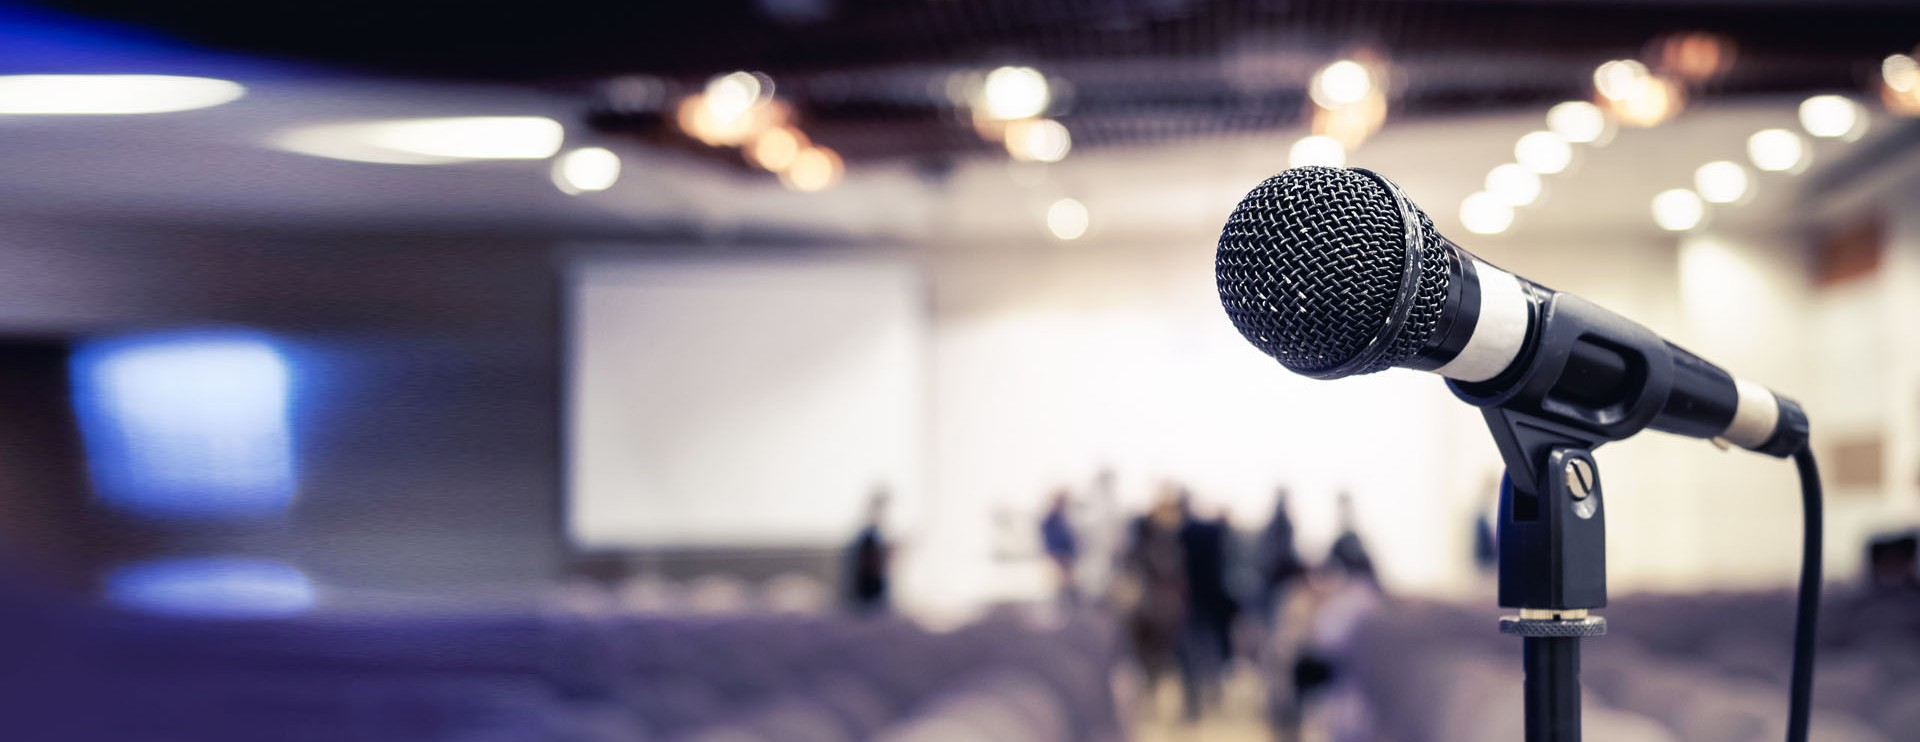 Close-up of a microphone in an auditorium